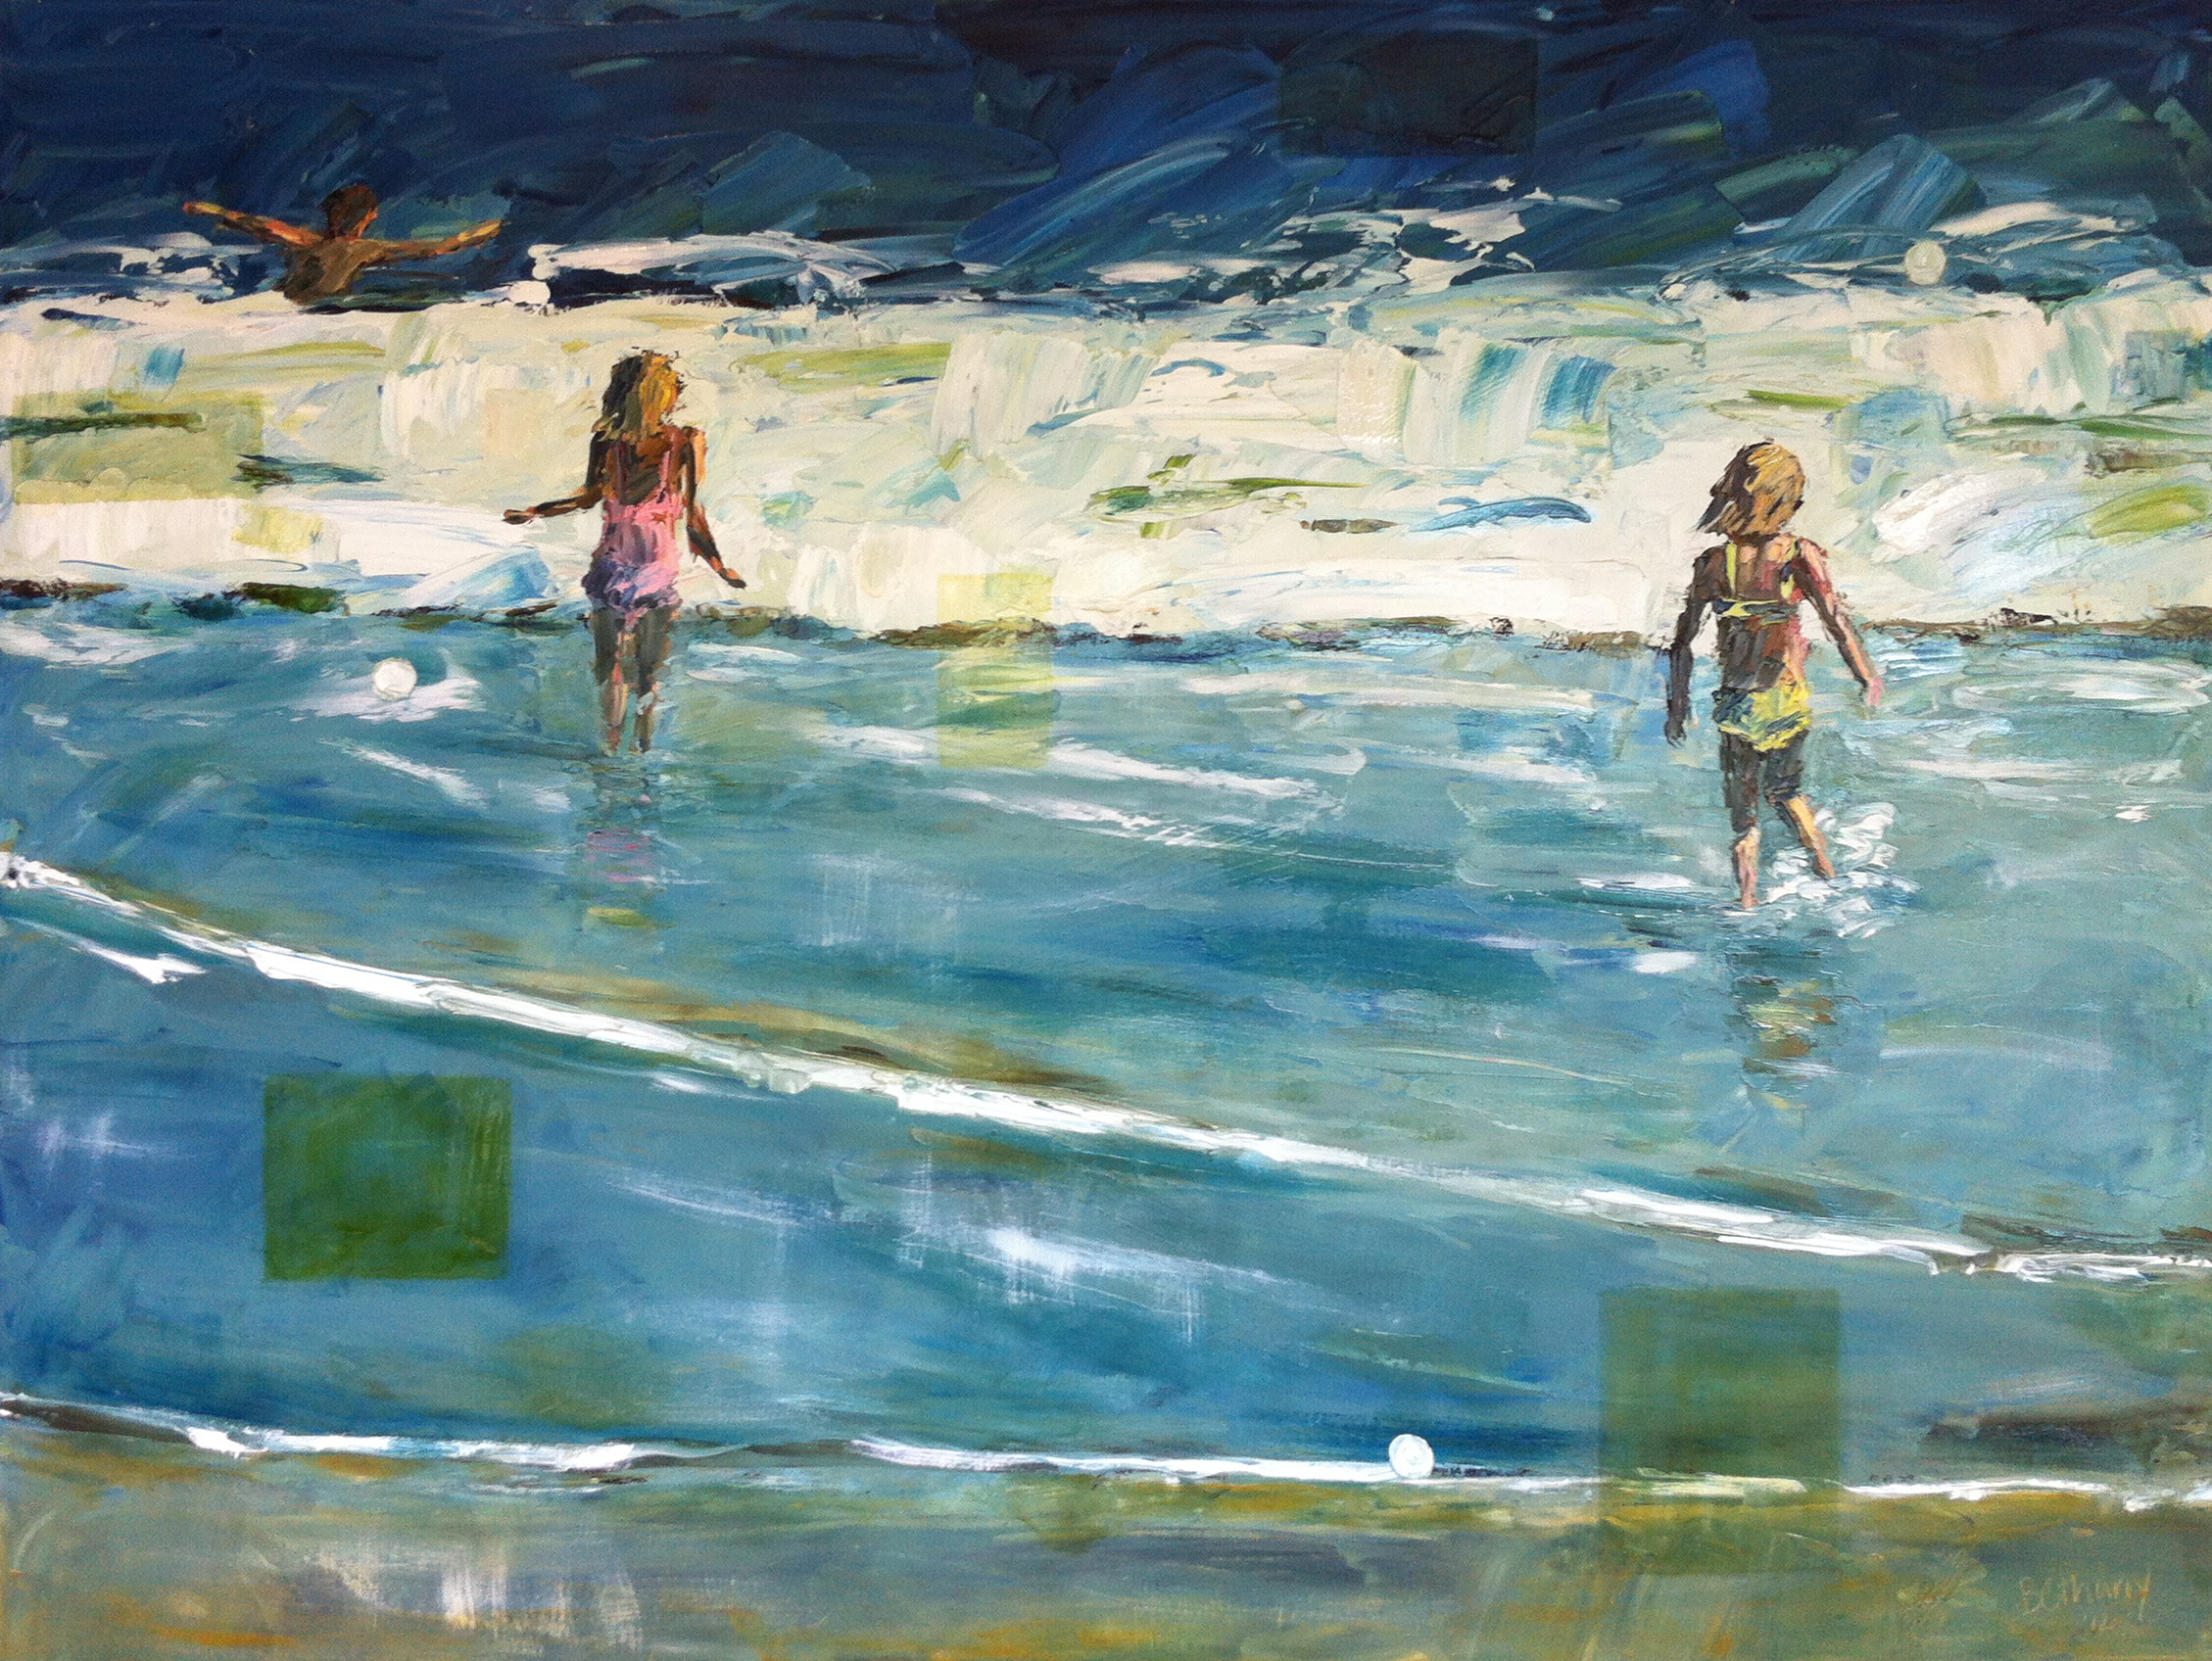 Two Girls in the Waves